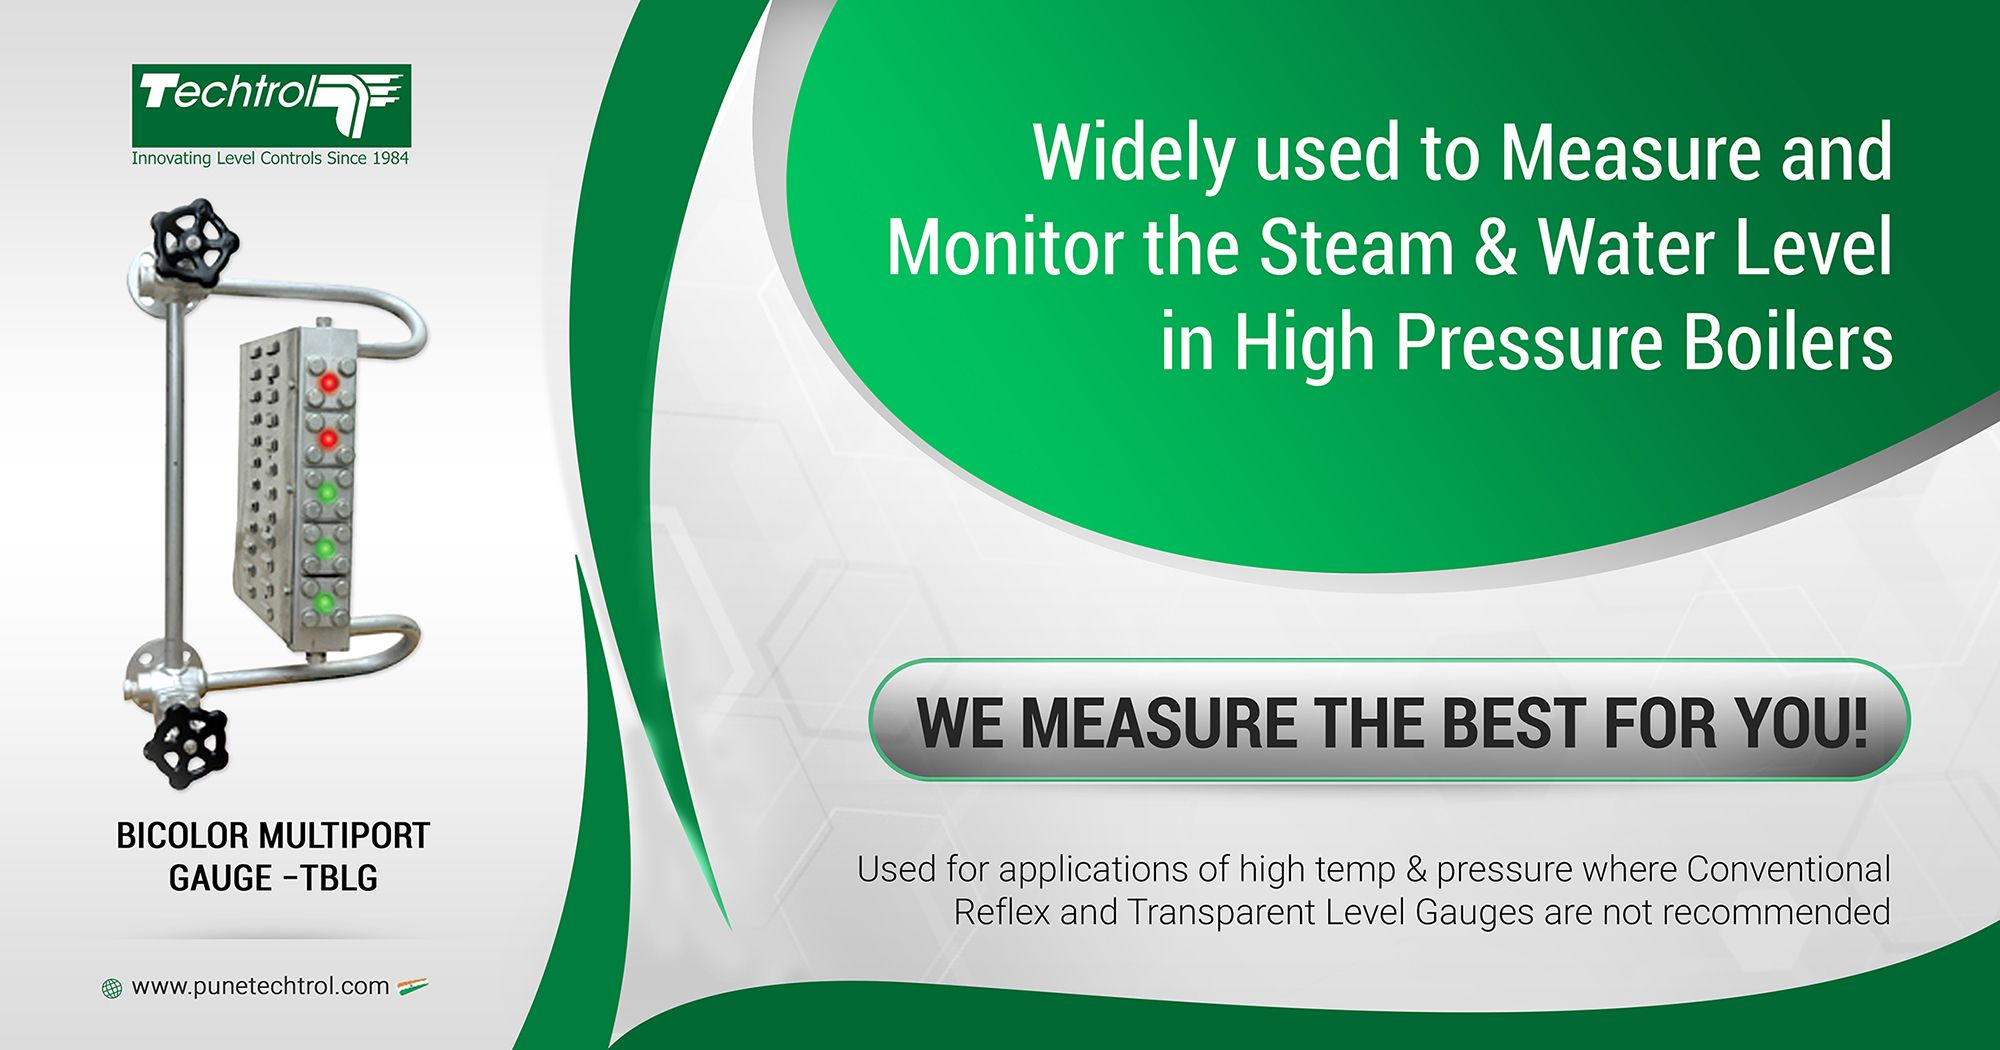 Pune Techtrolenhancesits range of level measurement instruments with addition of Bi-Color Multi Port Level Gauge.